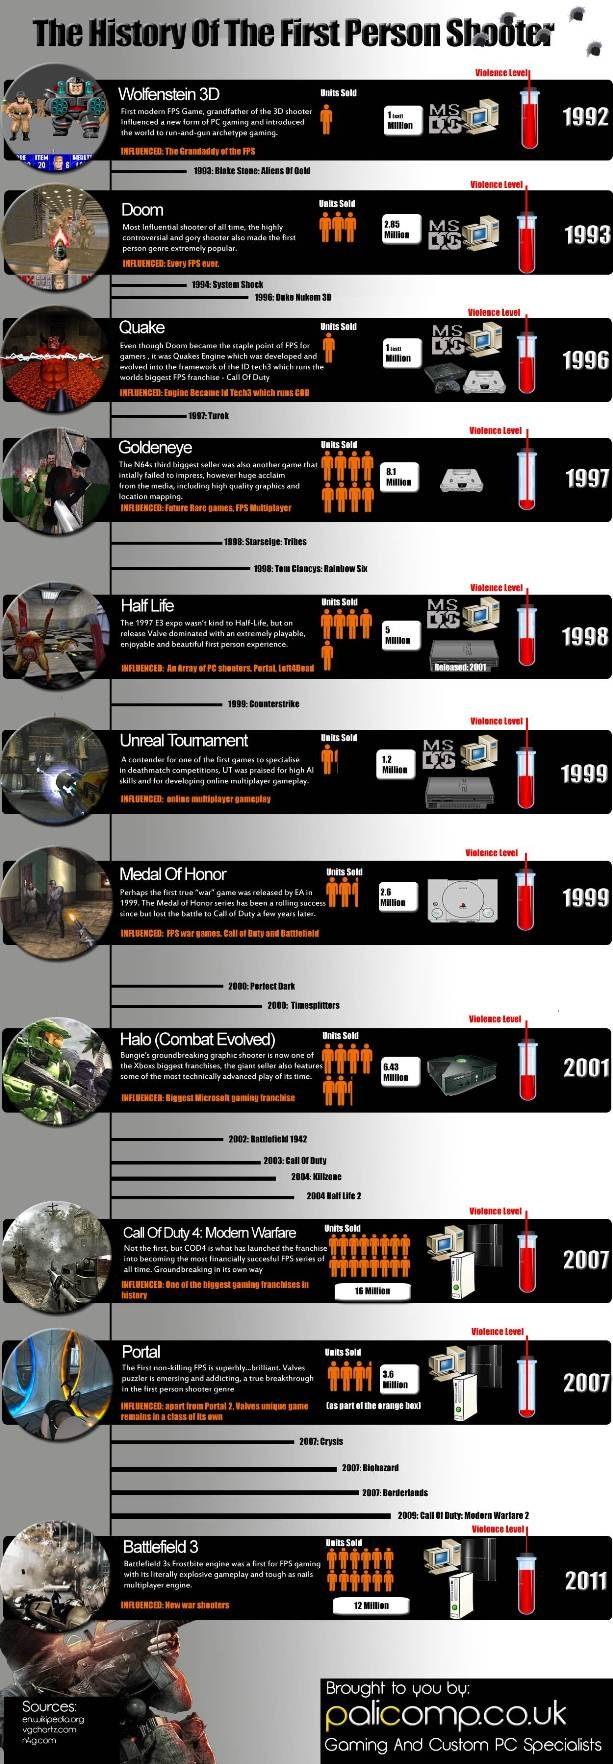 This infograph outlines the history of the First Person Shooter gaming concept. It outlines the year in which the game was produced, the consoles on which it works, and the amount of units sold. FPS gaming has evolved substantially from its inception to today.